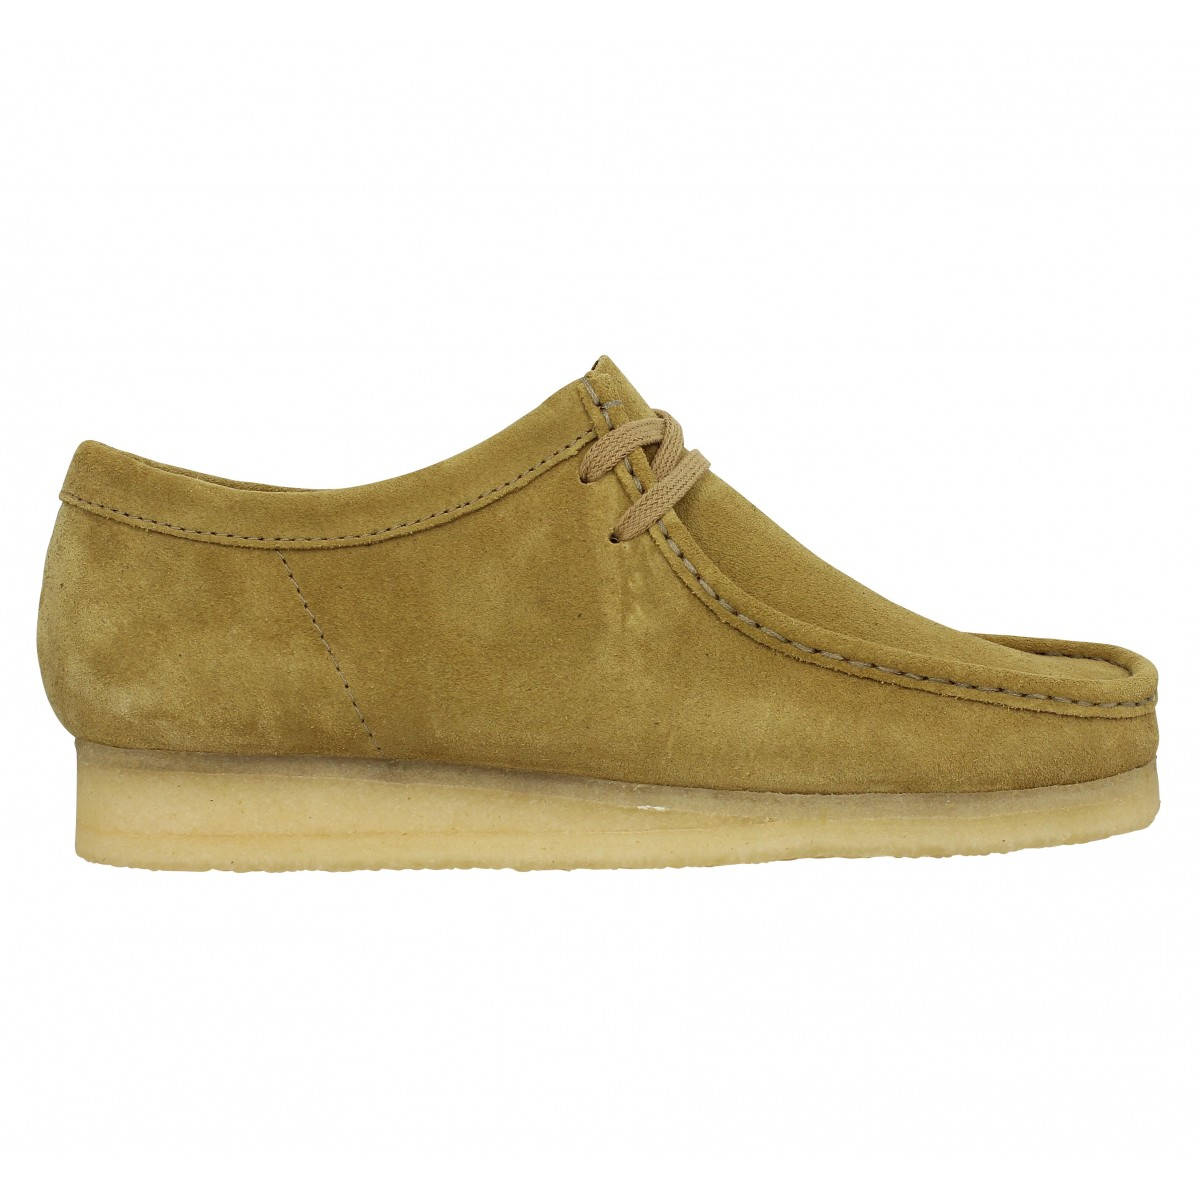 75f44c968c14e5 Clarks originals wallabee velours homme taupe homme | Fanny chaussures